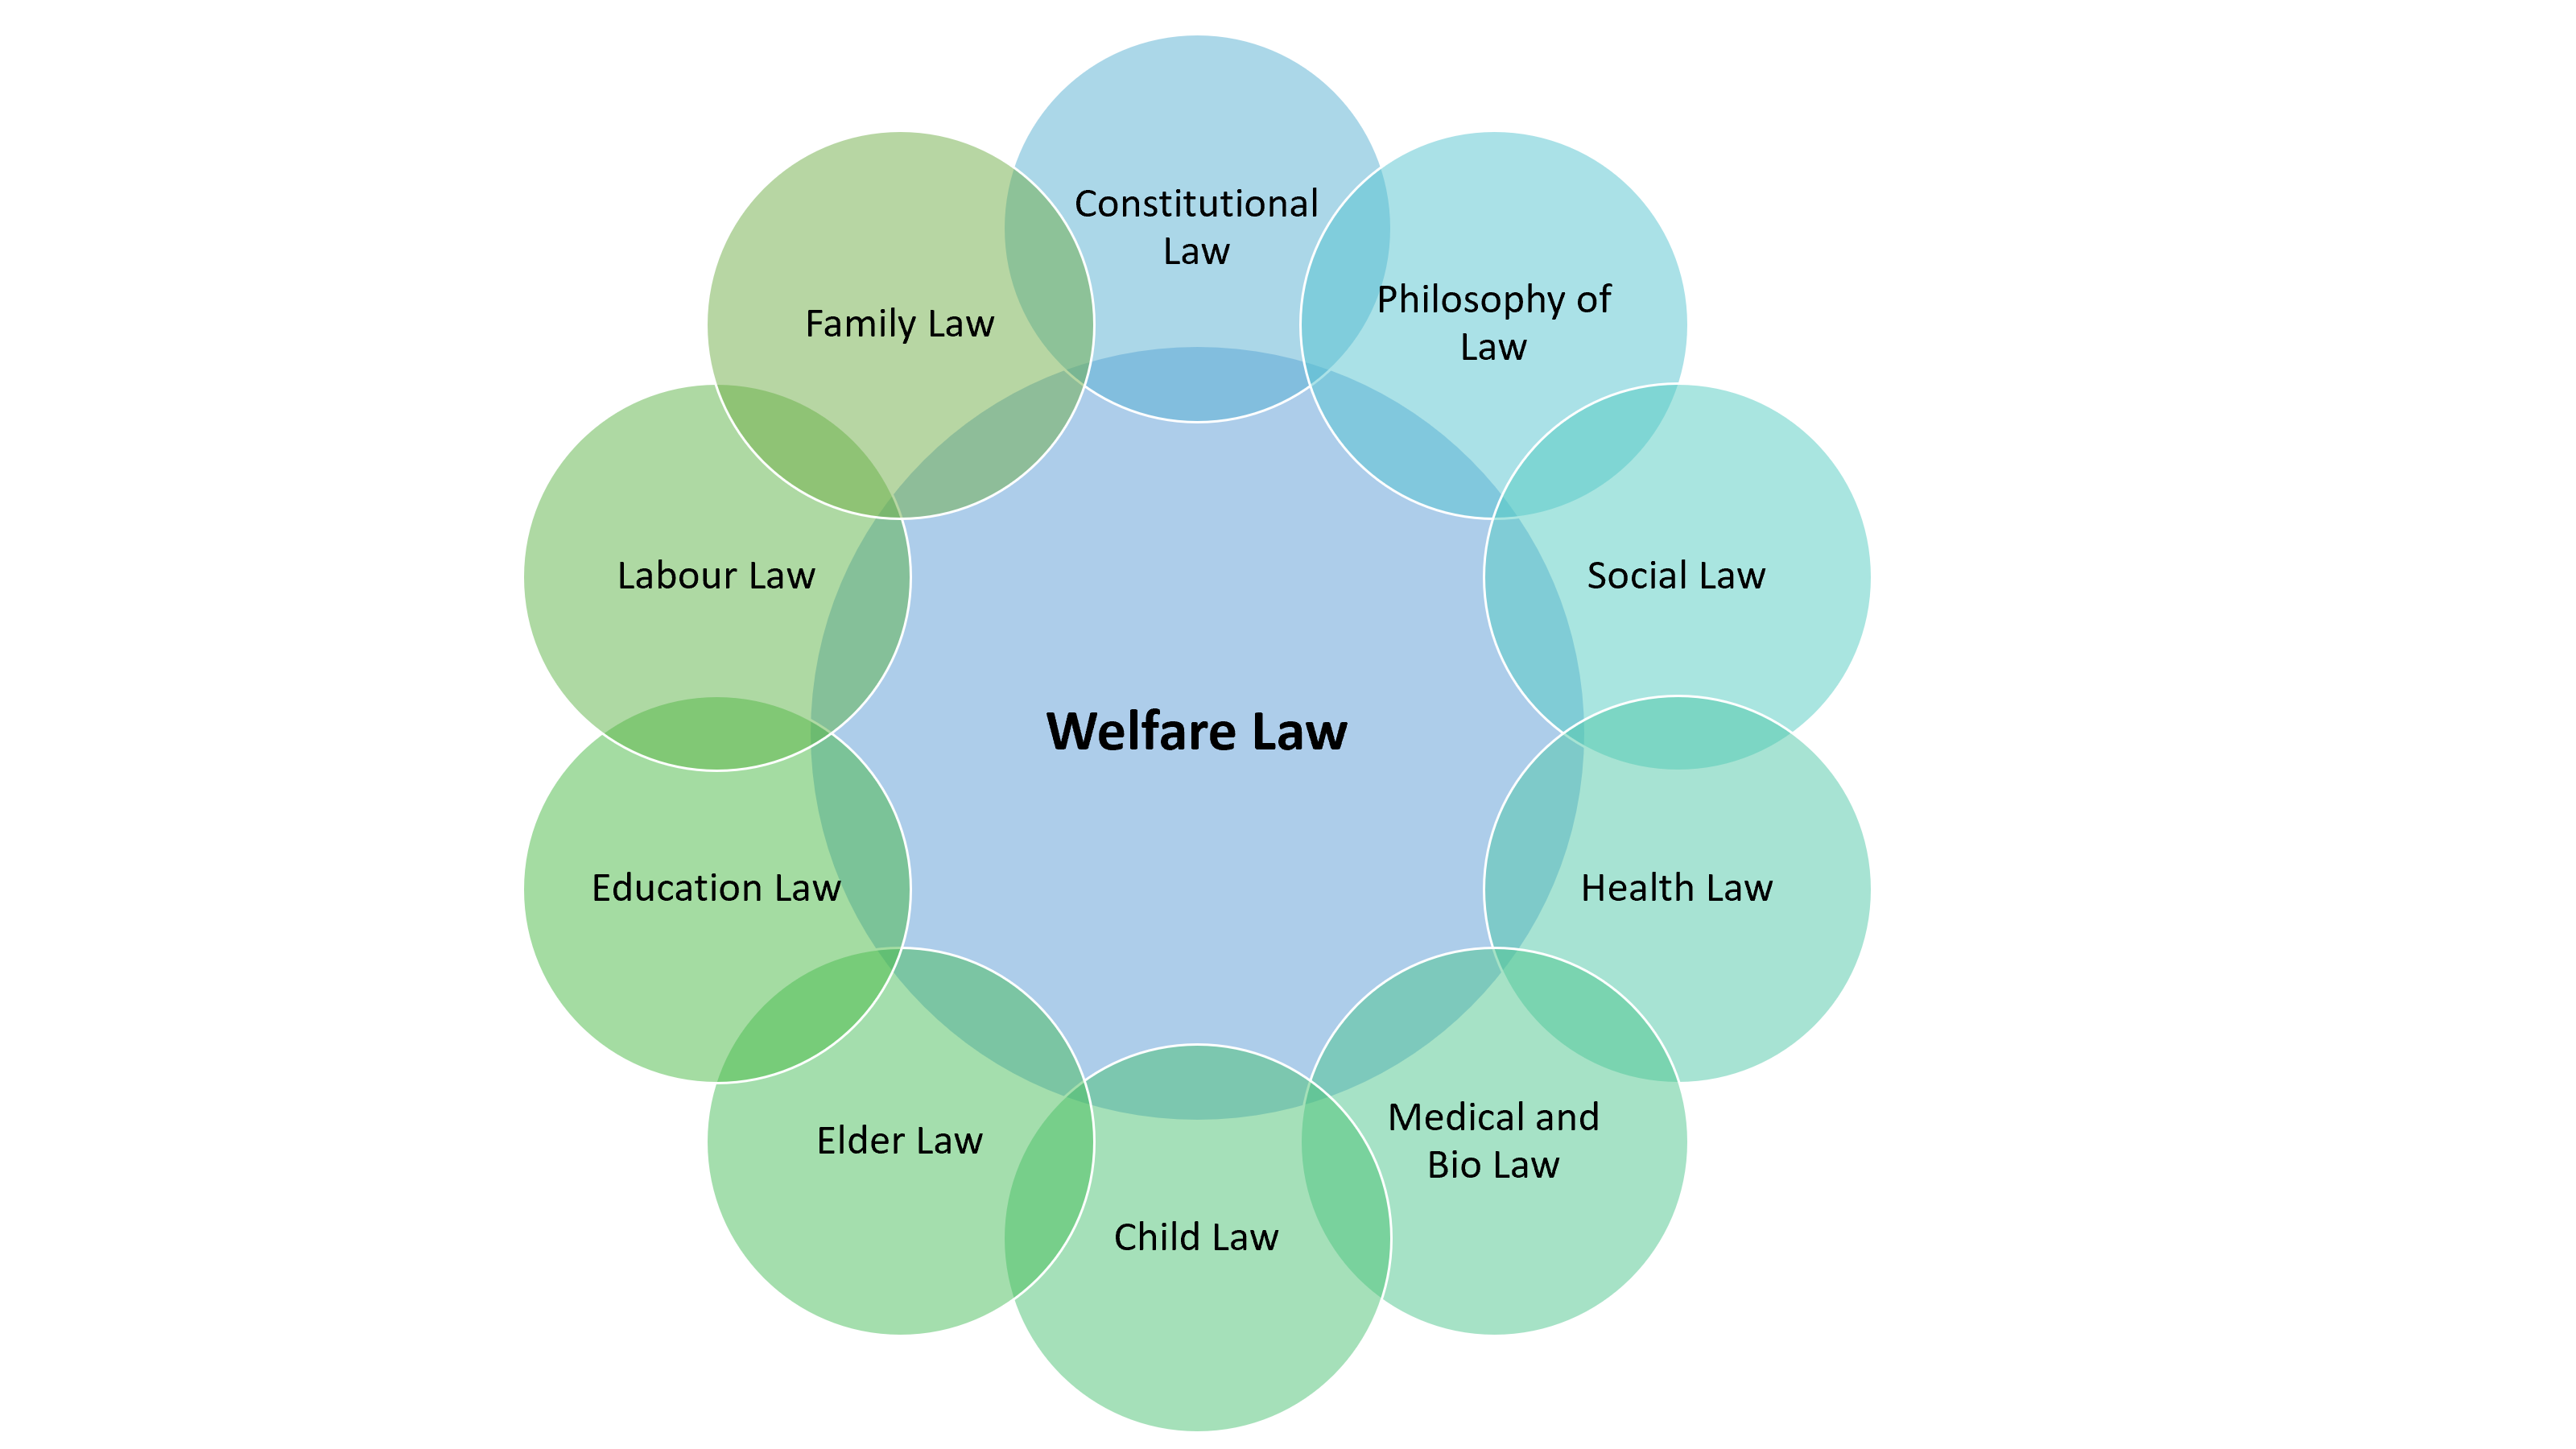 Illustration of the fields of law Welfare Law is connected to: Constitutional Law, Philosophy of Law, Social Law, Health Lawm Medical and Bio Law, Child Law, Elder Law, Education Law, Labour Law, and Family Law.